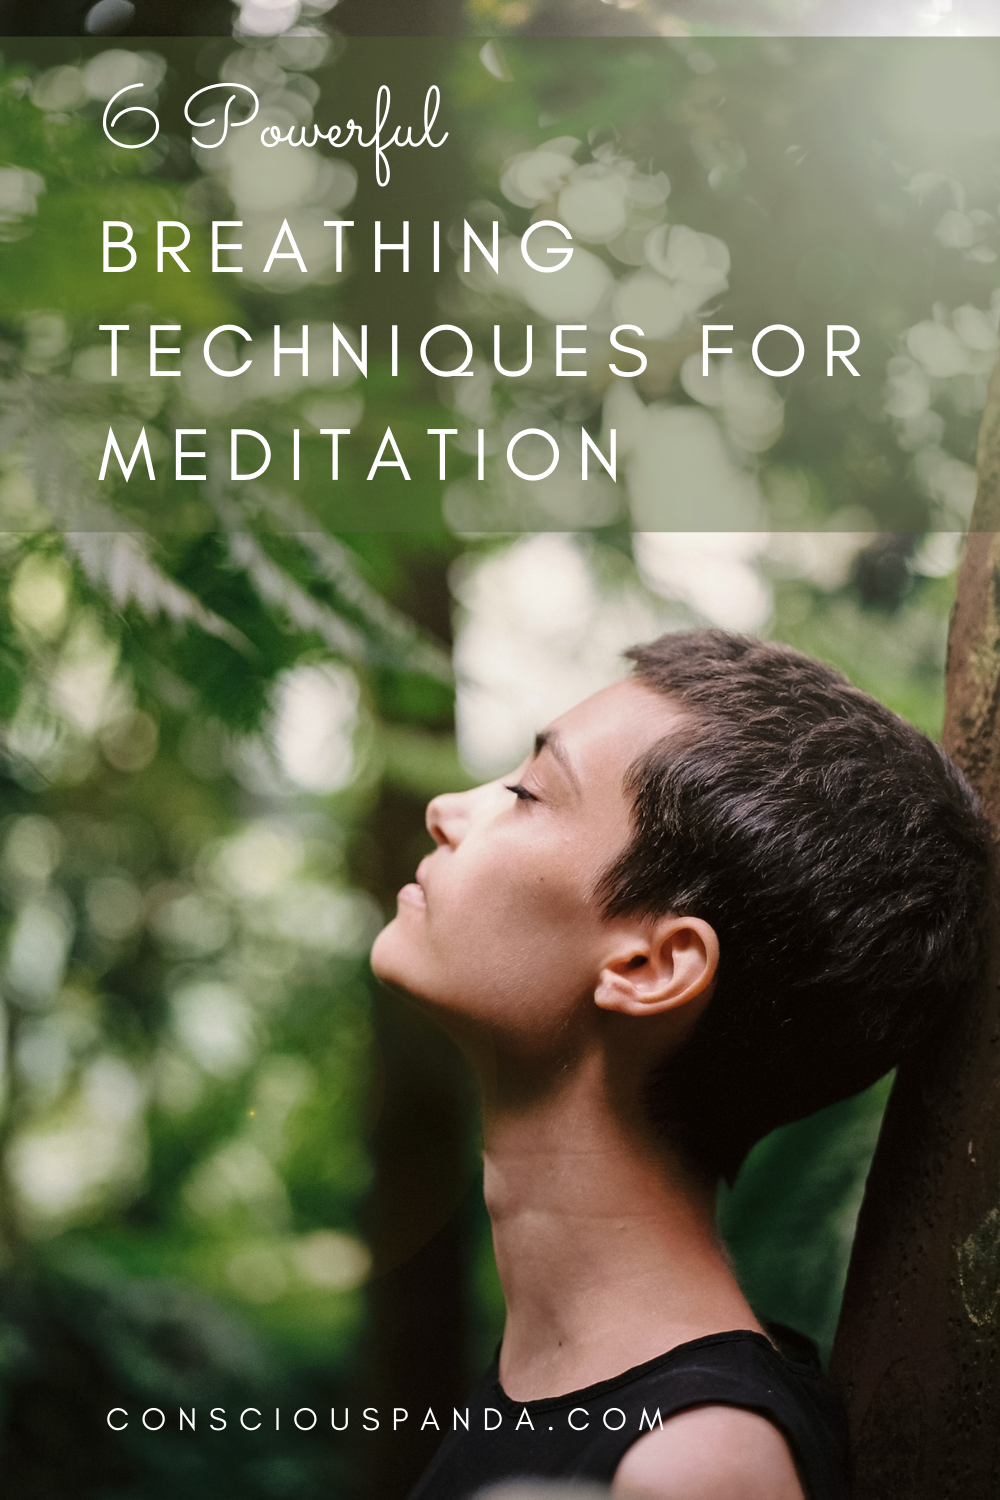 6 Powerful Breathing Techniques for Meditation